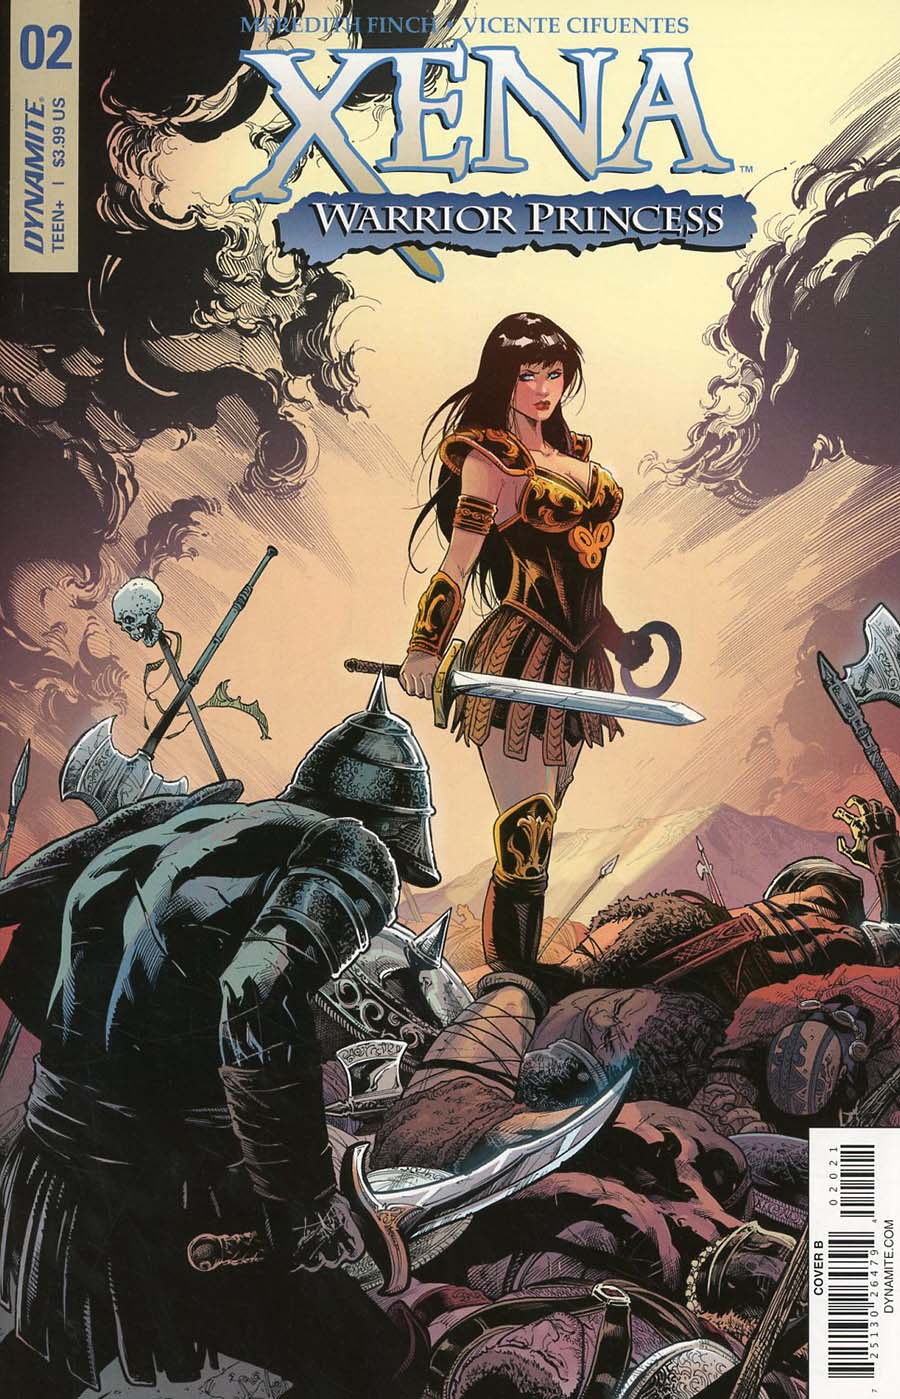 Xena Vol 2 #2 Cover B Variant Vicente Cifuentes Cover